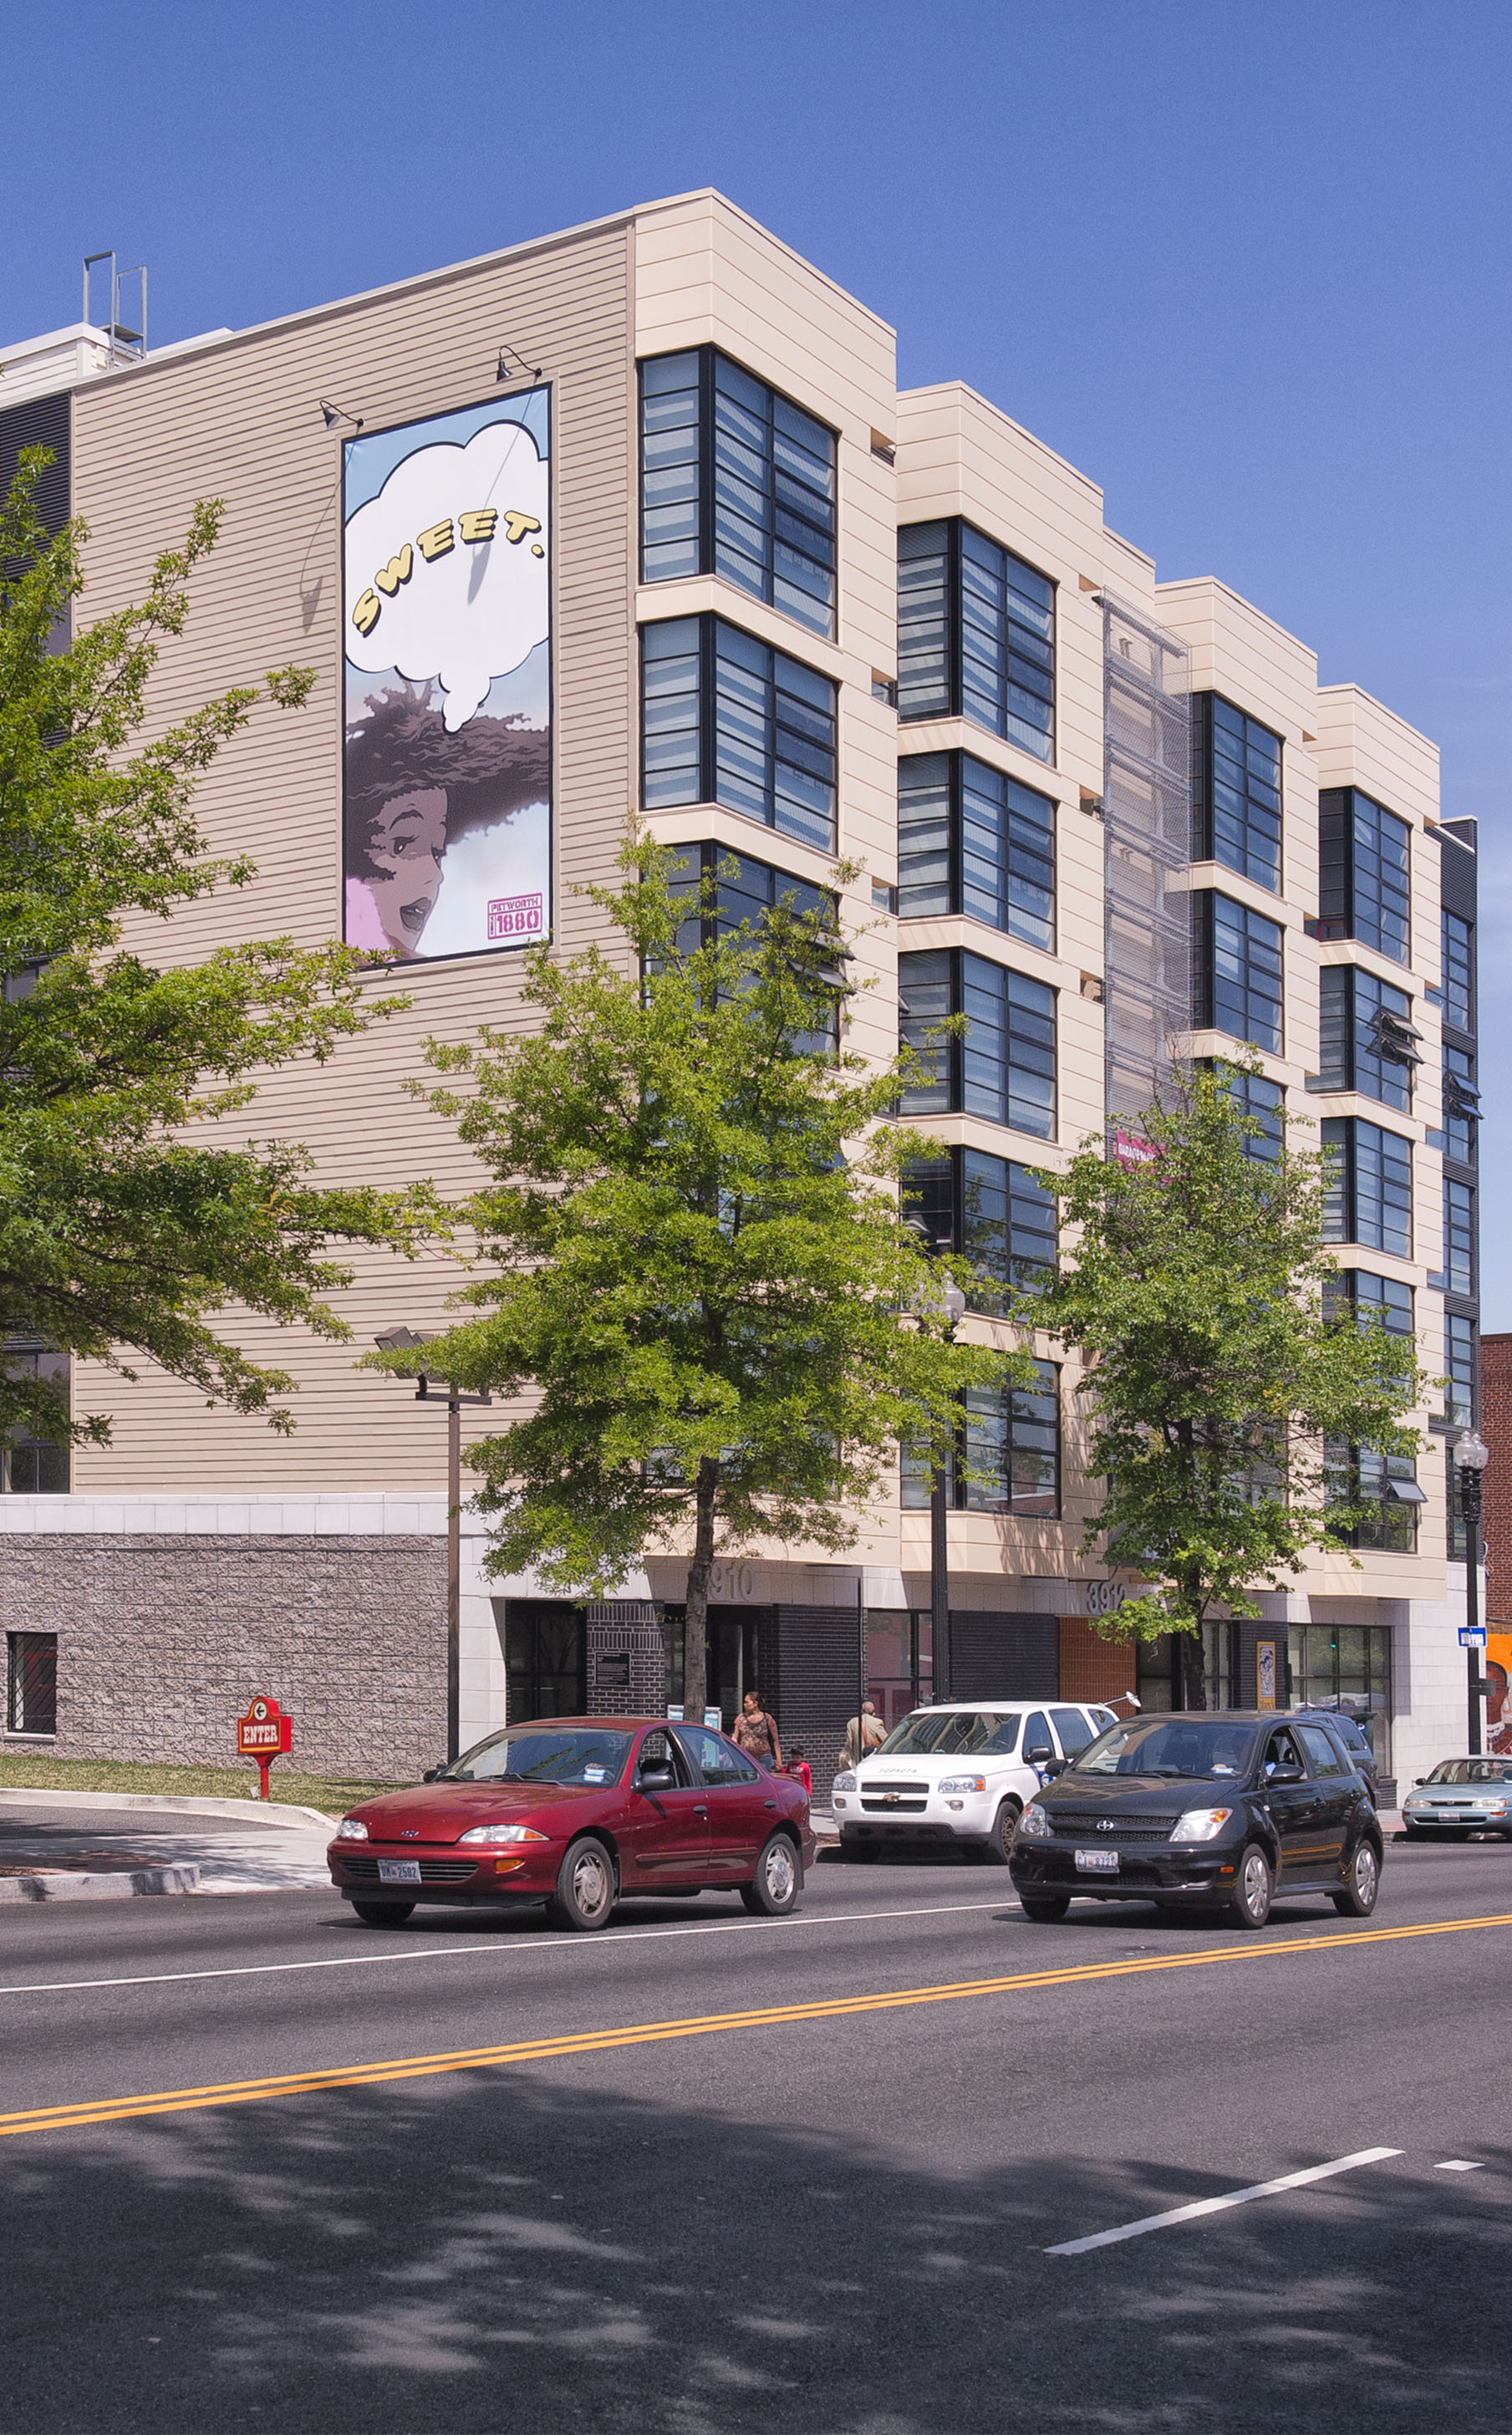 Three Tree Flats  • 130 apartments • Ground floor retail • Petworth, NW Washington, DC